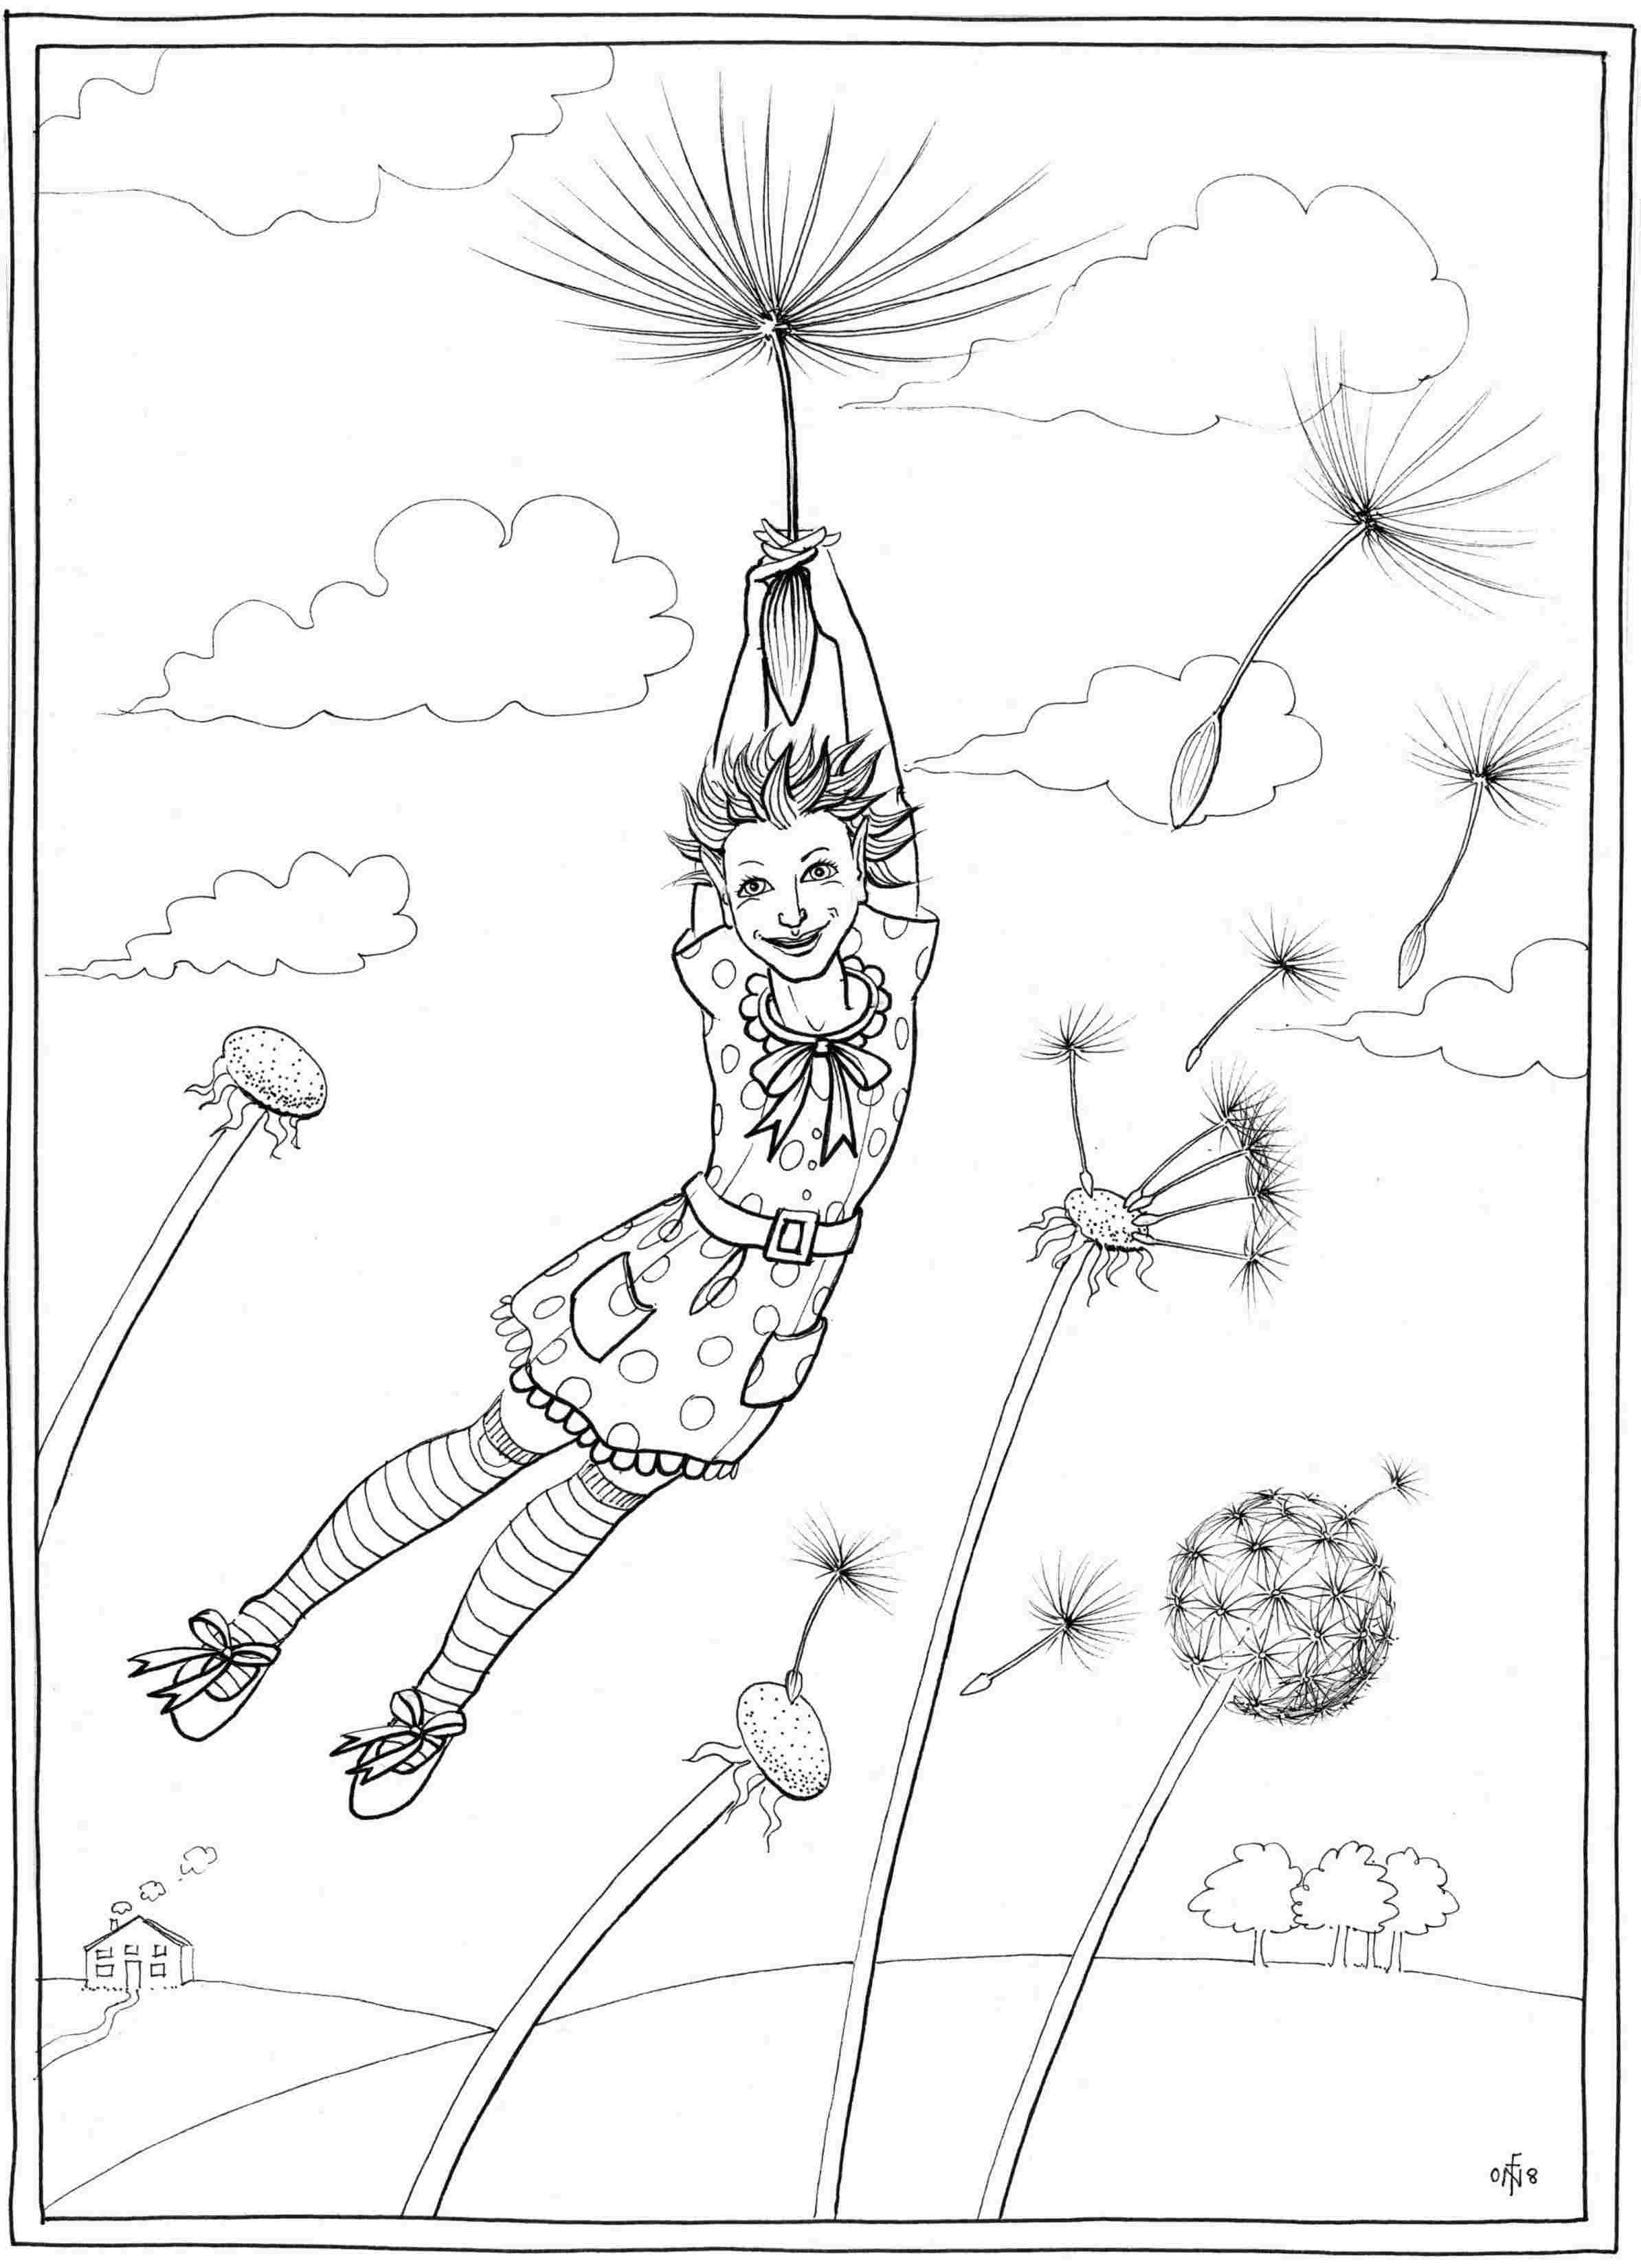 Away with the Dandelions - colouring-in drawing - to download, right click and save, print out and colour in!